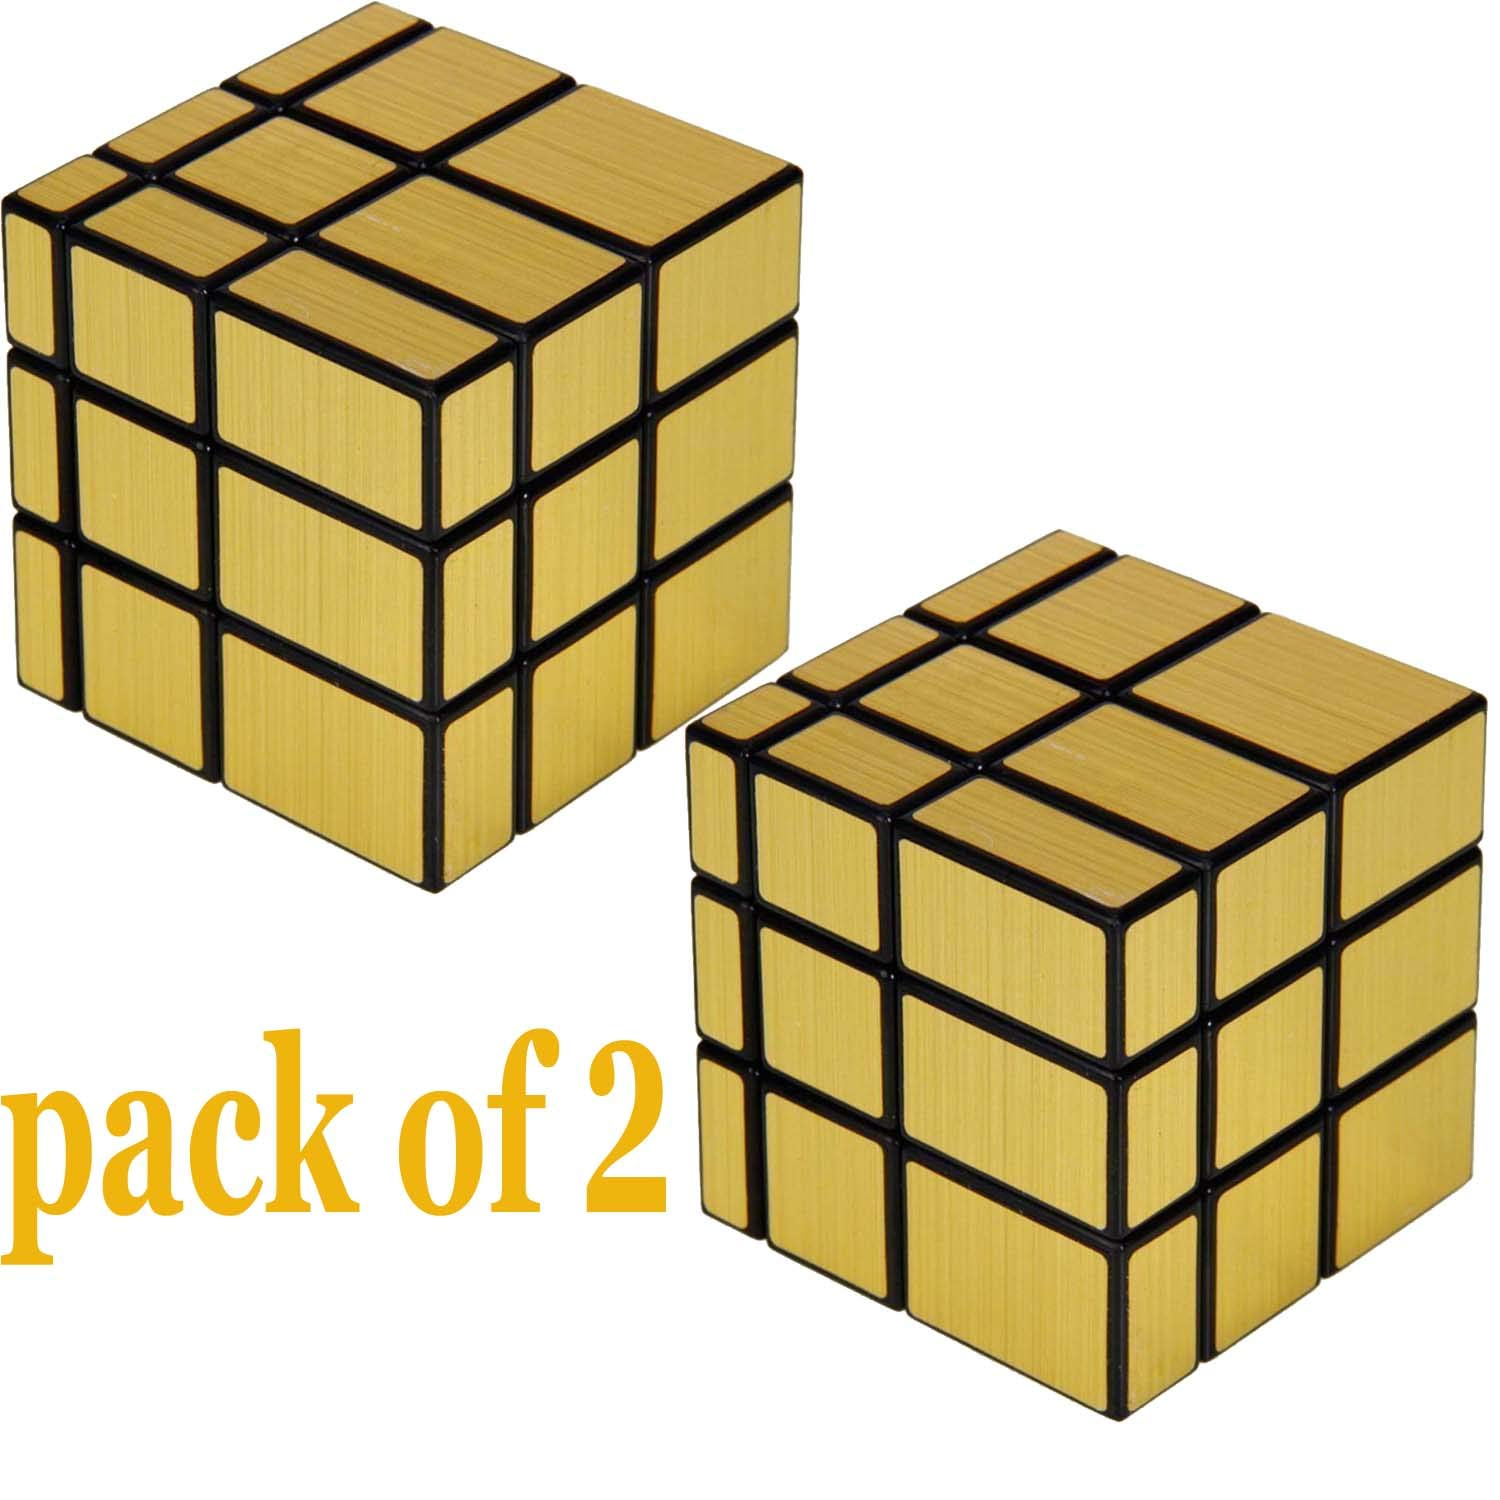 Buy Sharabani Mirror Cube 3x3 Cube High Speed Gold Mirror Magic Cube 3x3 Mirror Cube Brainstorming Puzzle Game Toy Pack Of 2 Online At Low Prices In India Amazon In